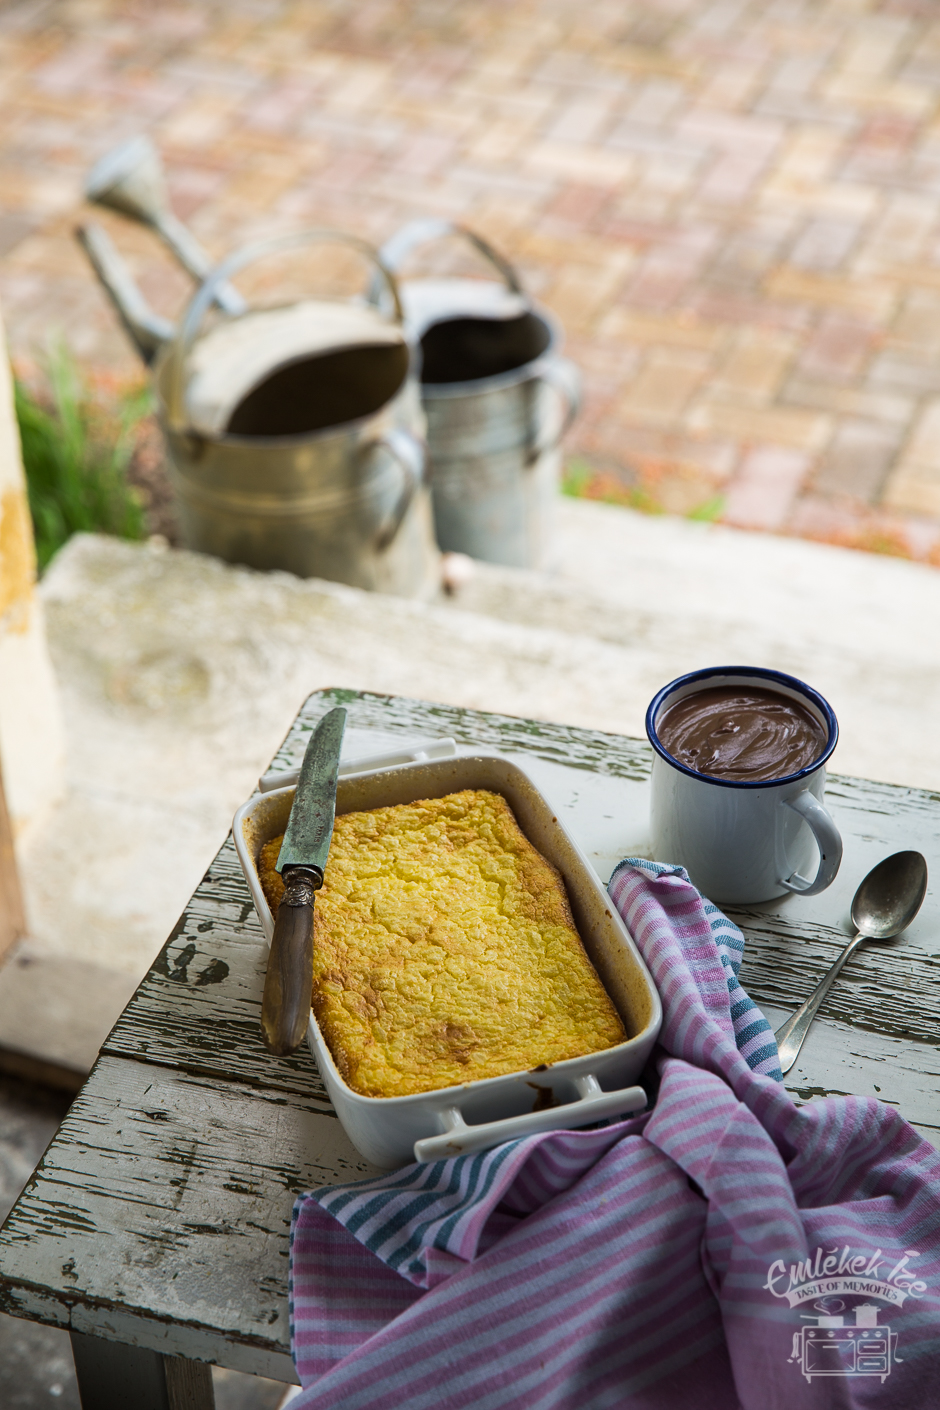 Hungarian rice soufflé according from the Taste of Memories countryside kitchen